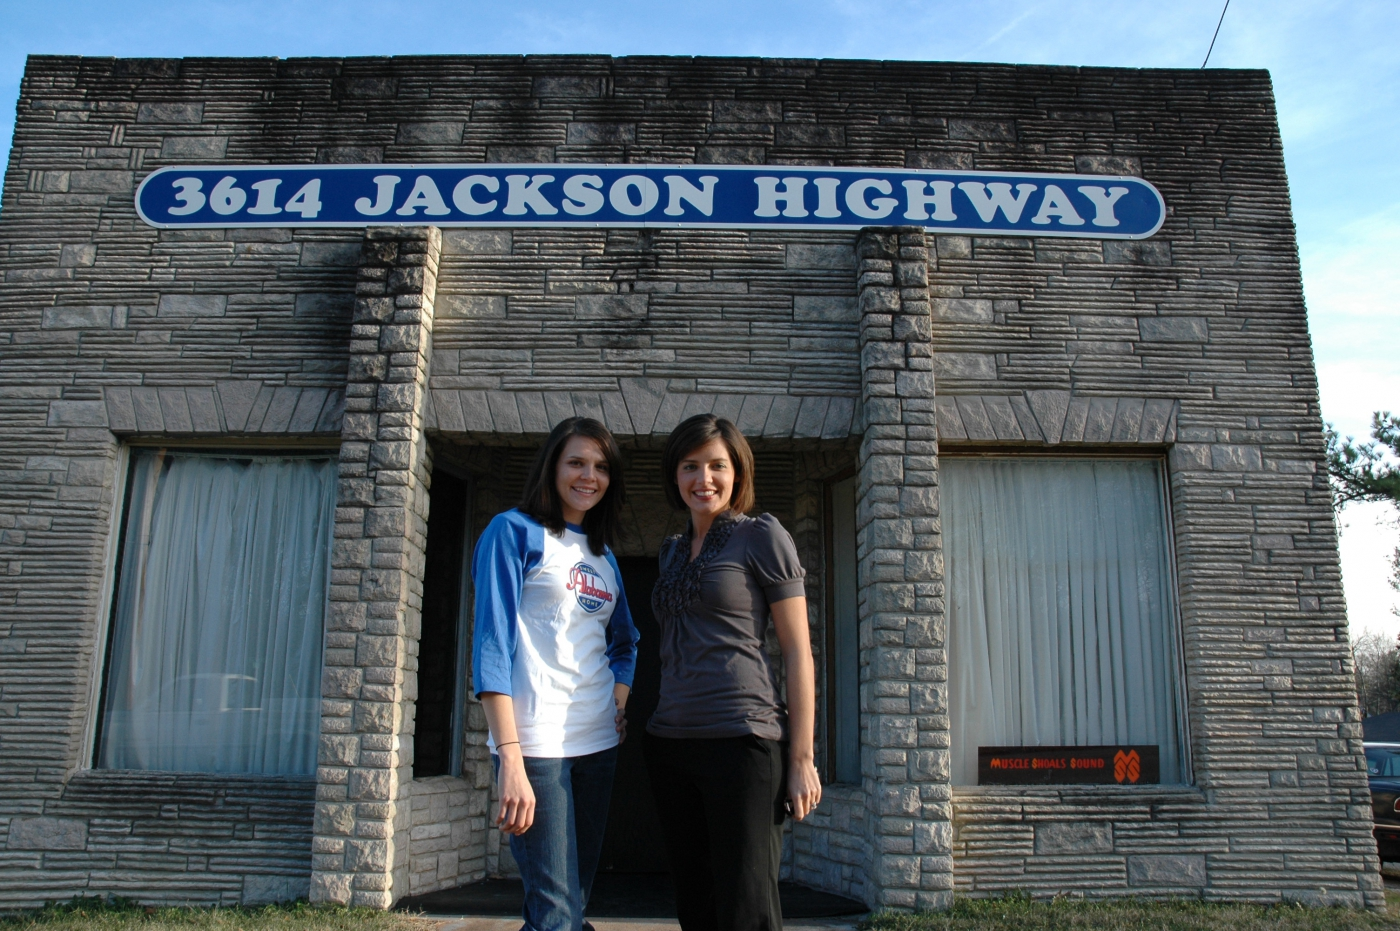 Take your photo outside the original location of the Muscle Shoals Sound Studio, just like Cher did for her 3614 Jackson Highway album cover.